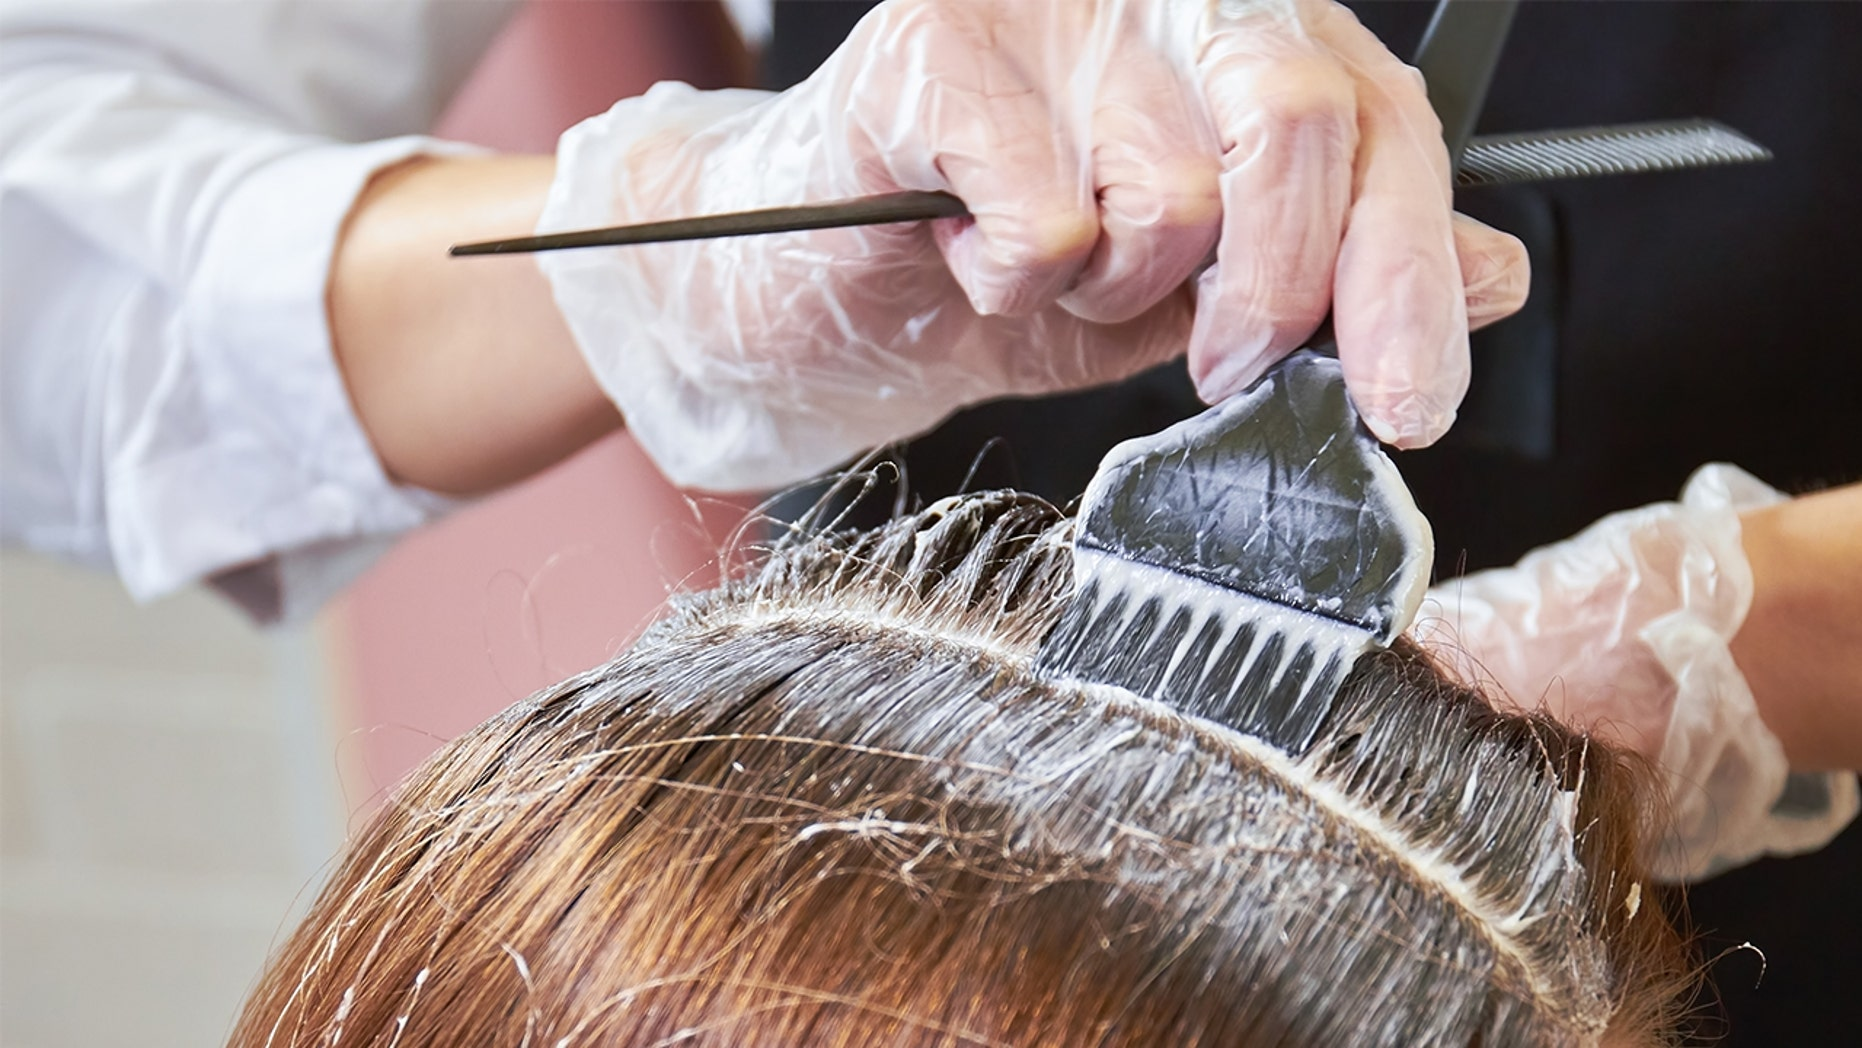 A bride claims her mother-in-law wants her to dye her hair so they don't match on the wedding day.